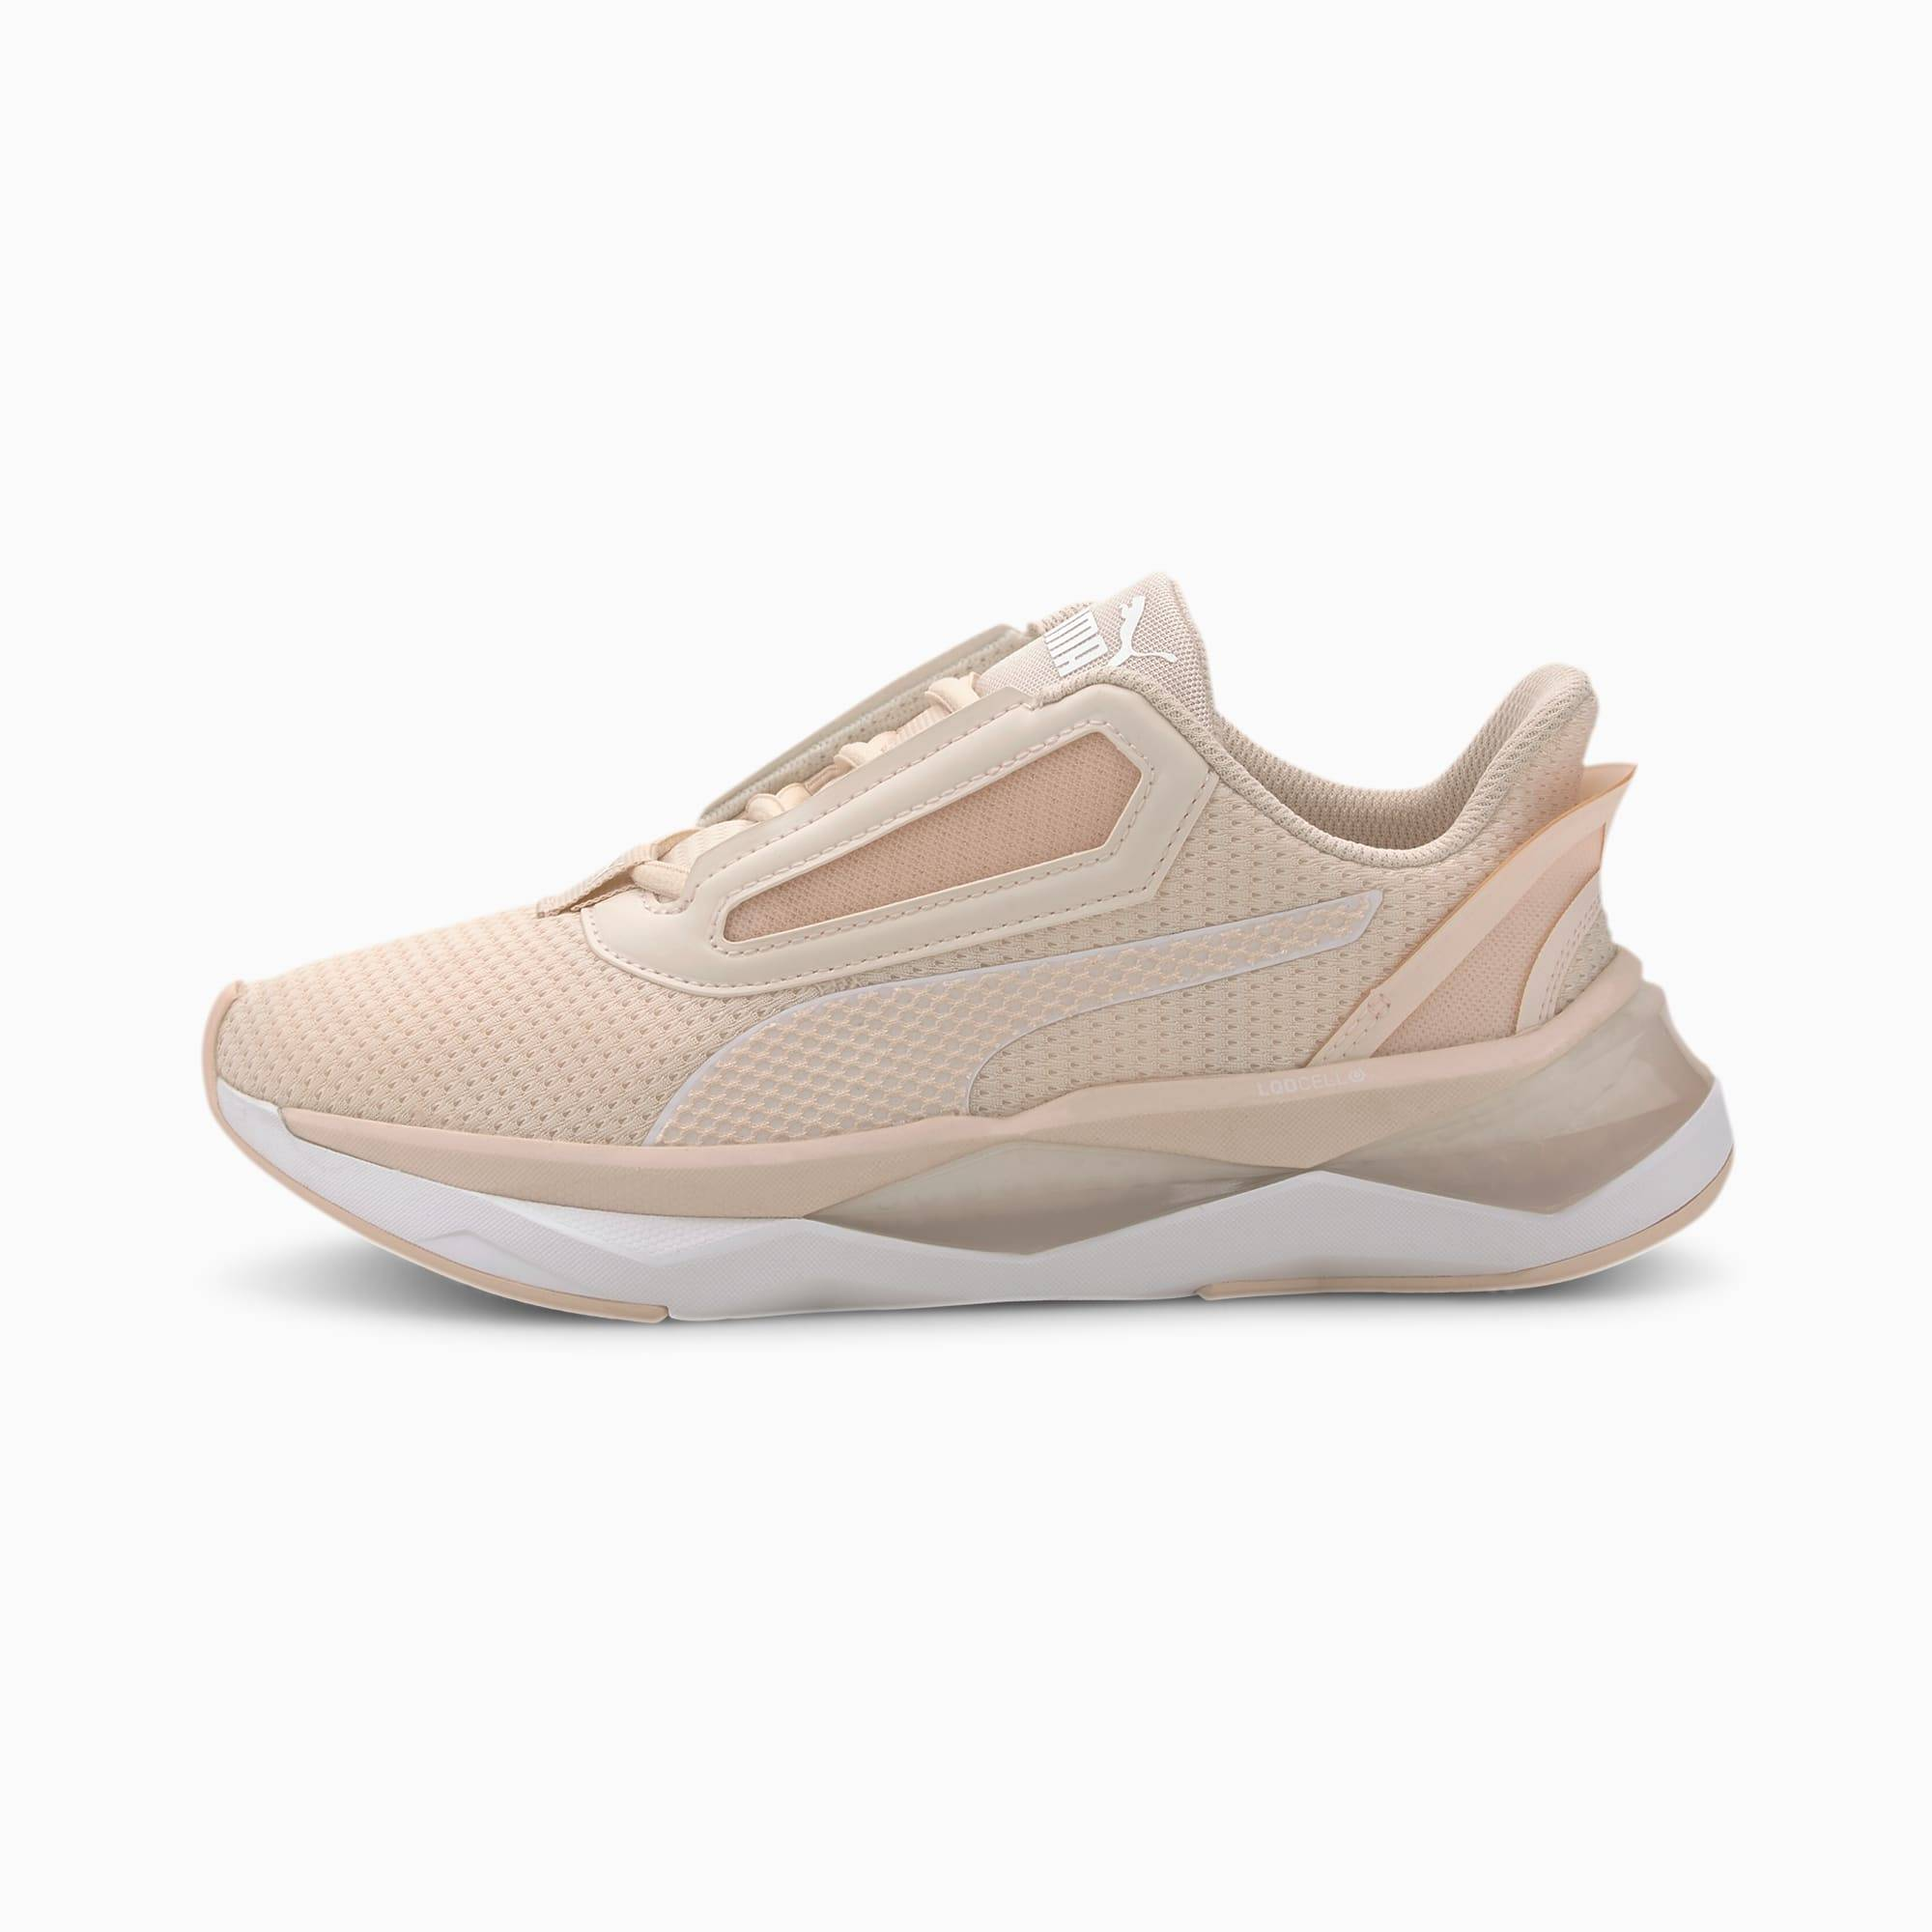 Puma Lqdcell Shatter XT Nc Women's Training Shoes, Rosewater, size 6, Shoes